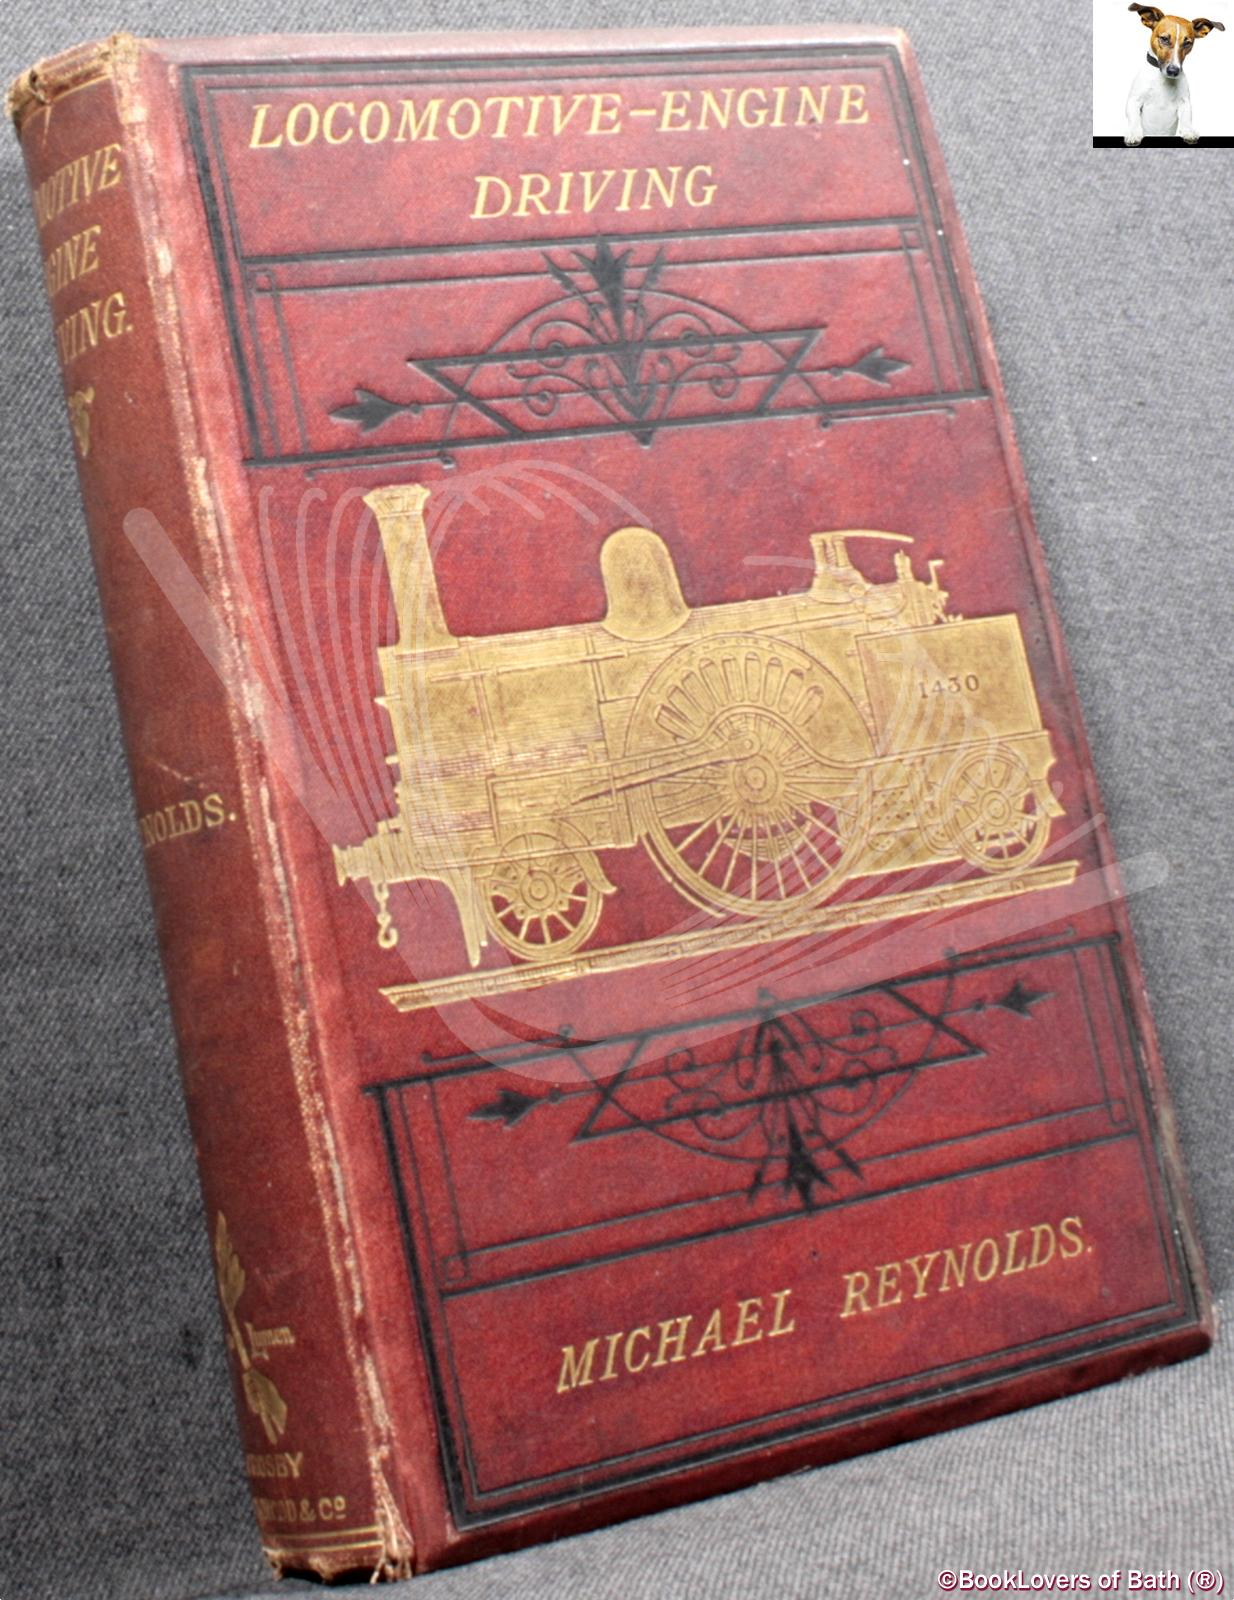 Locomotive Engine Driving: A Practical Manual for: Michael Reynolds